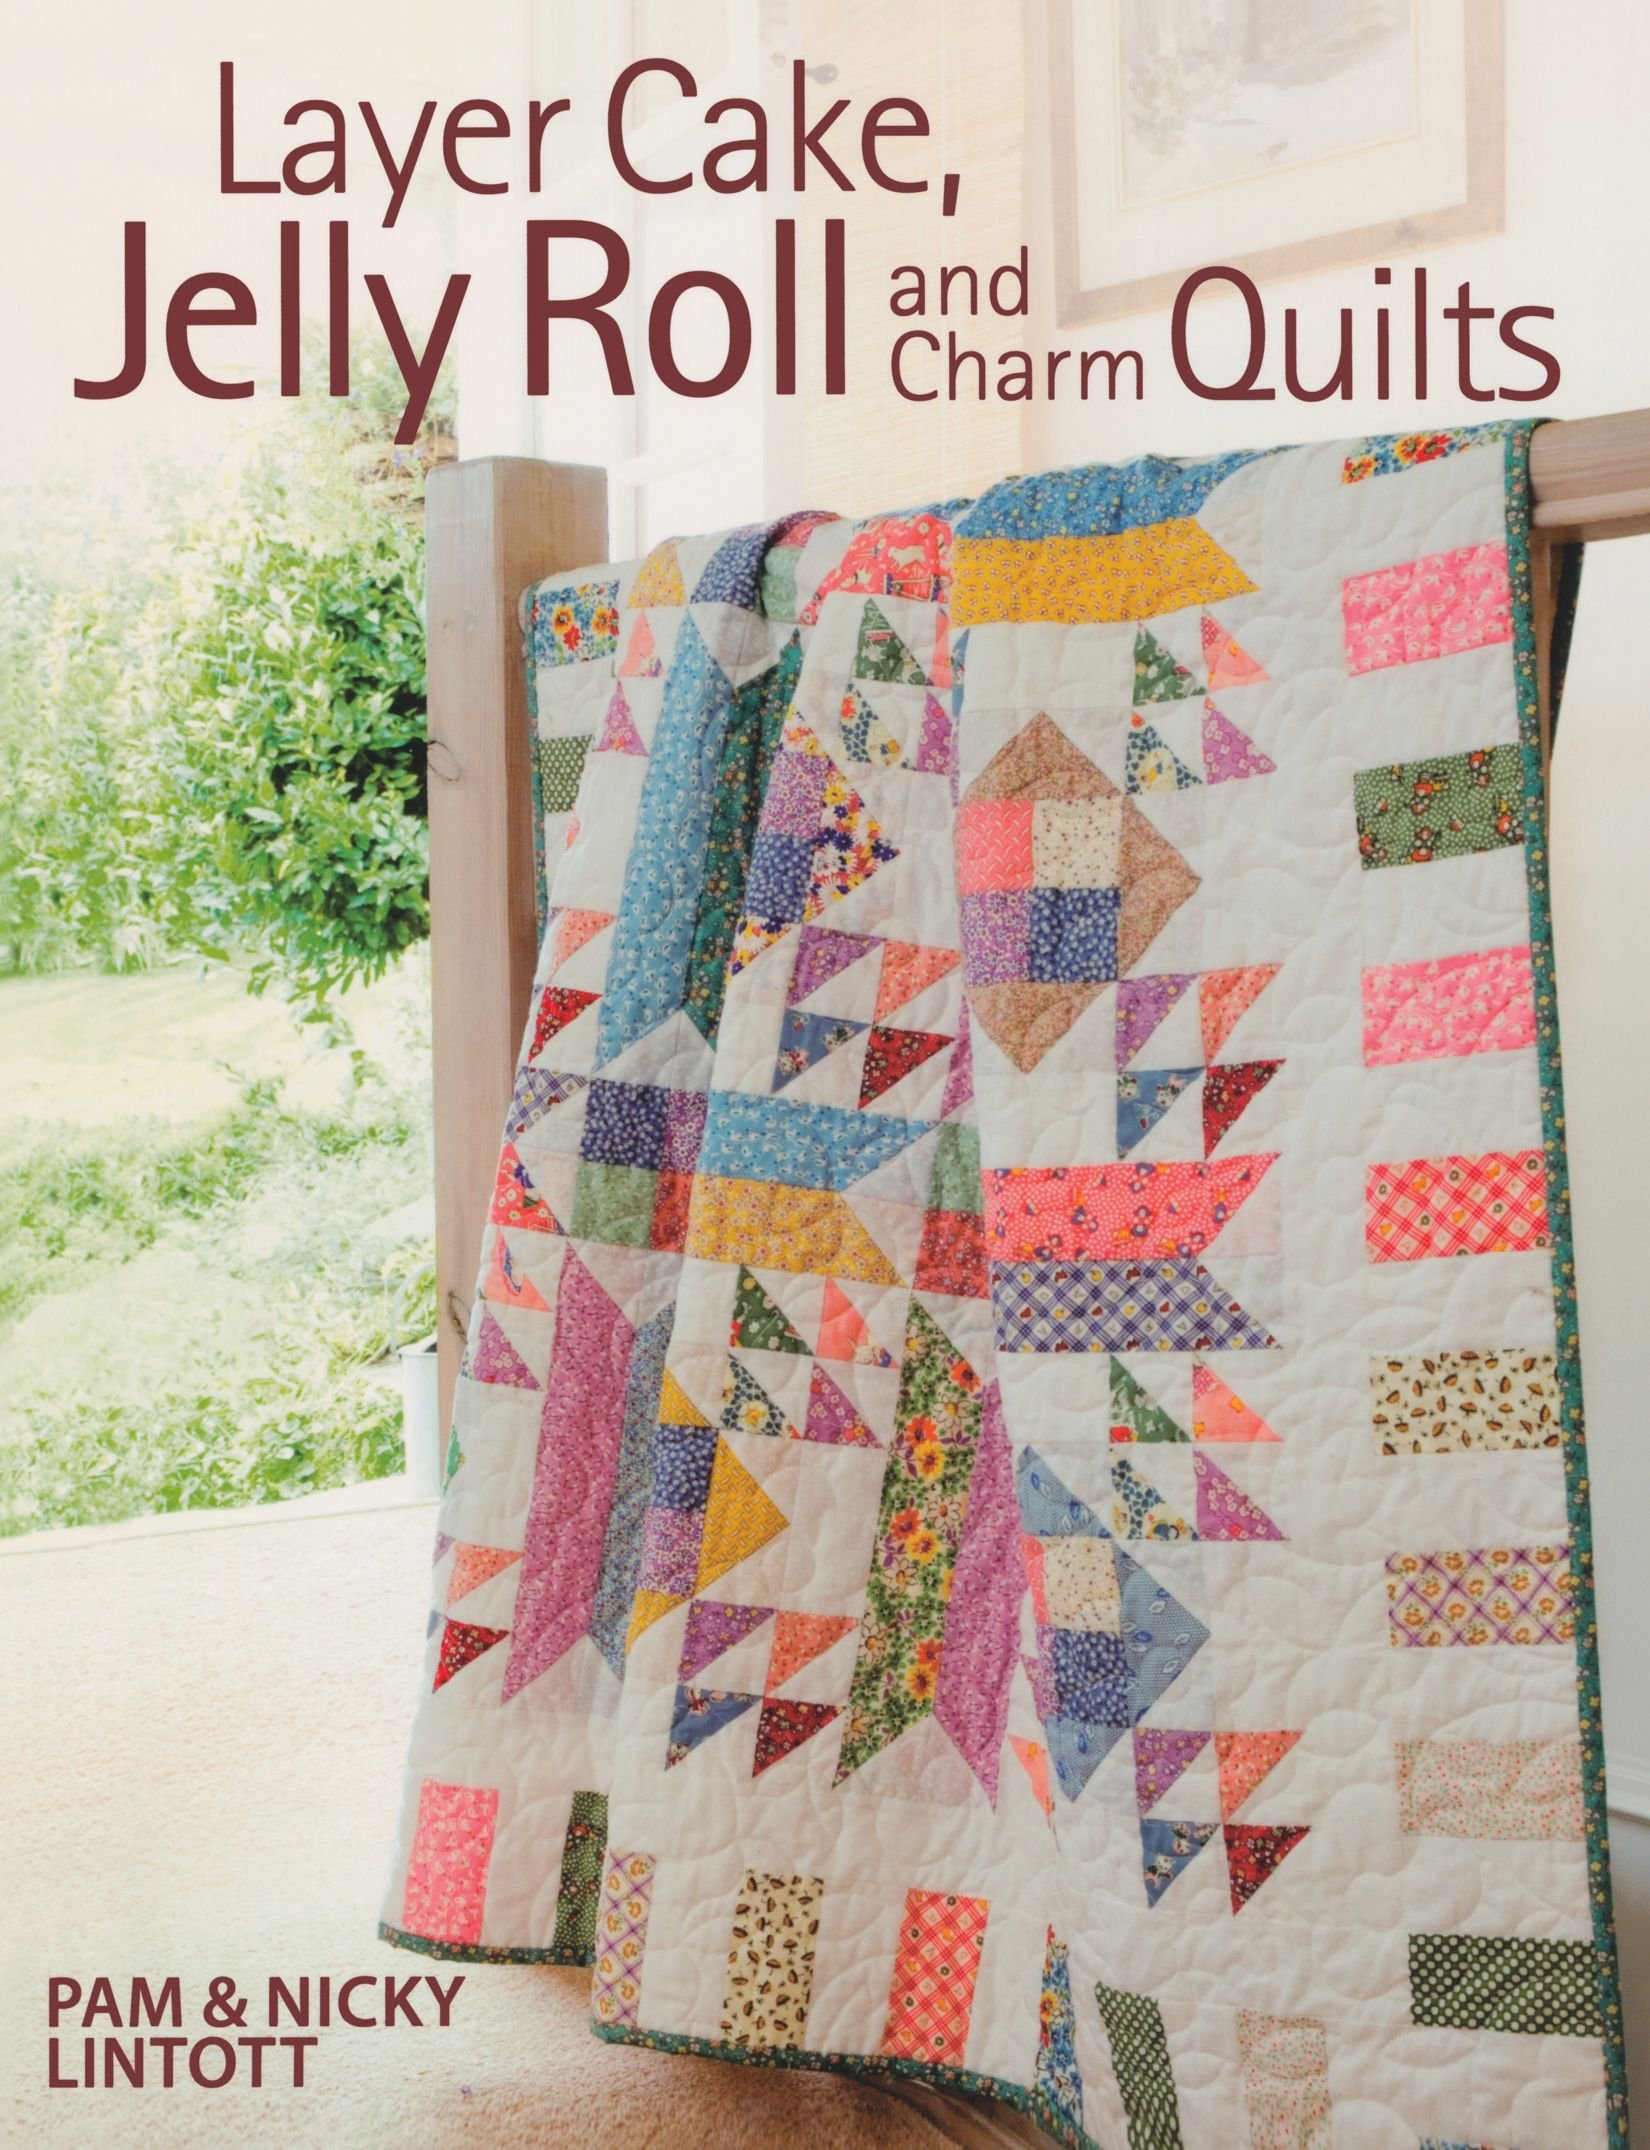 Layer Cake Jelly Roll Charm Quilts Pam Lintott 8601400563748